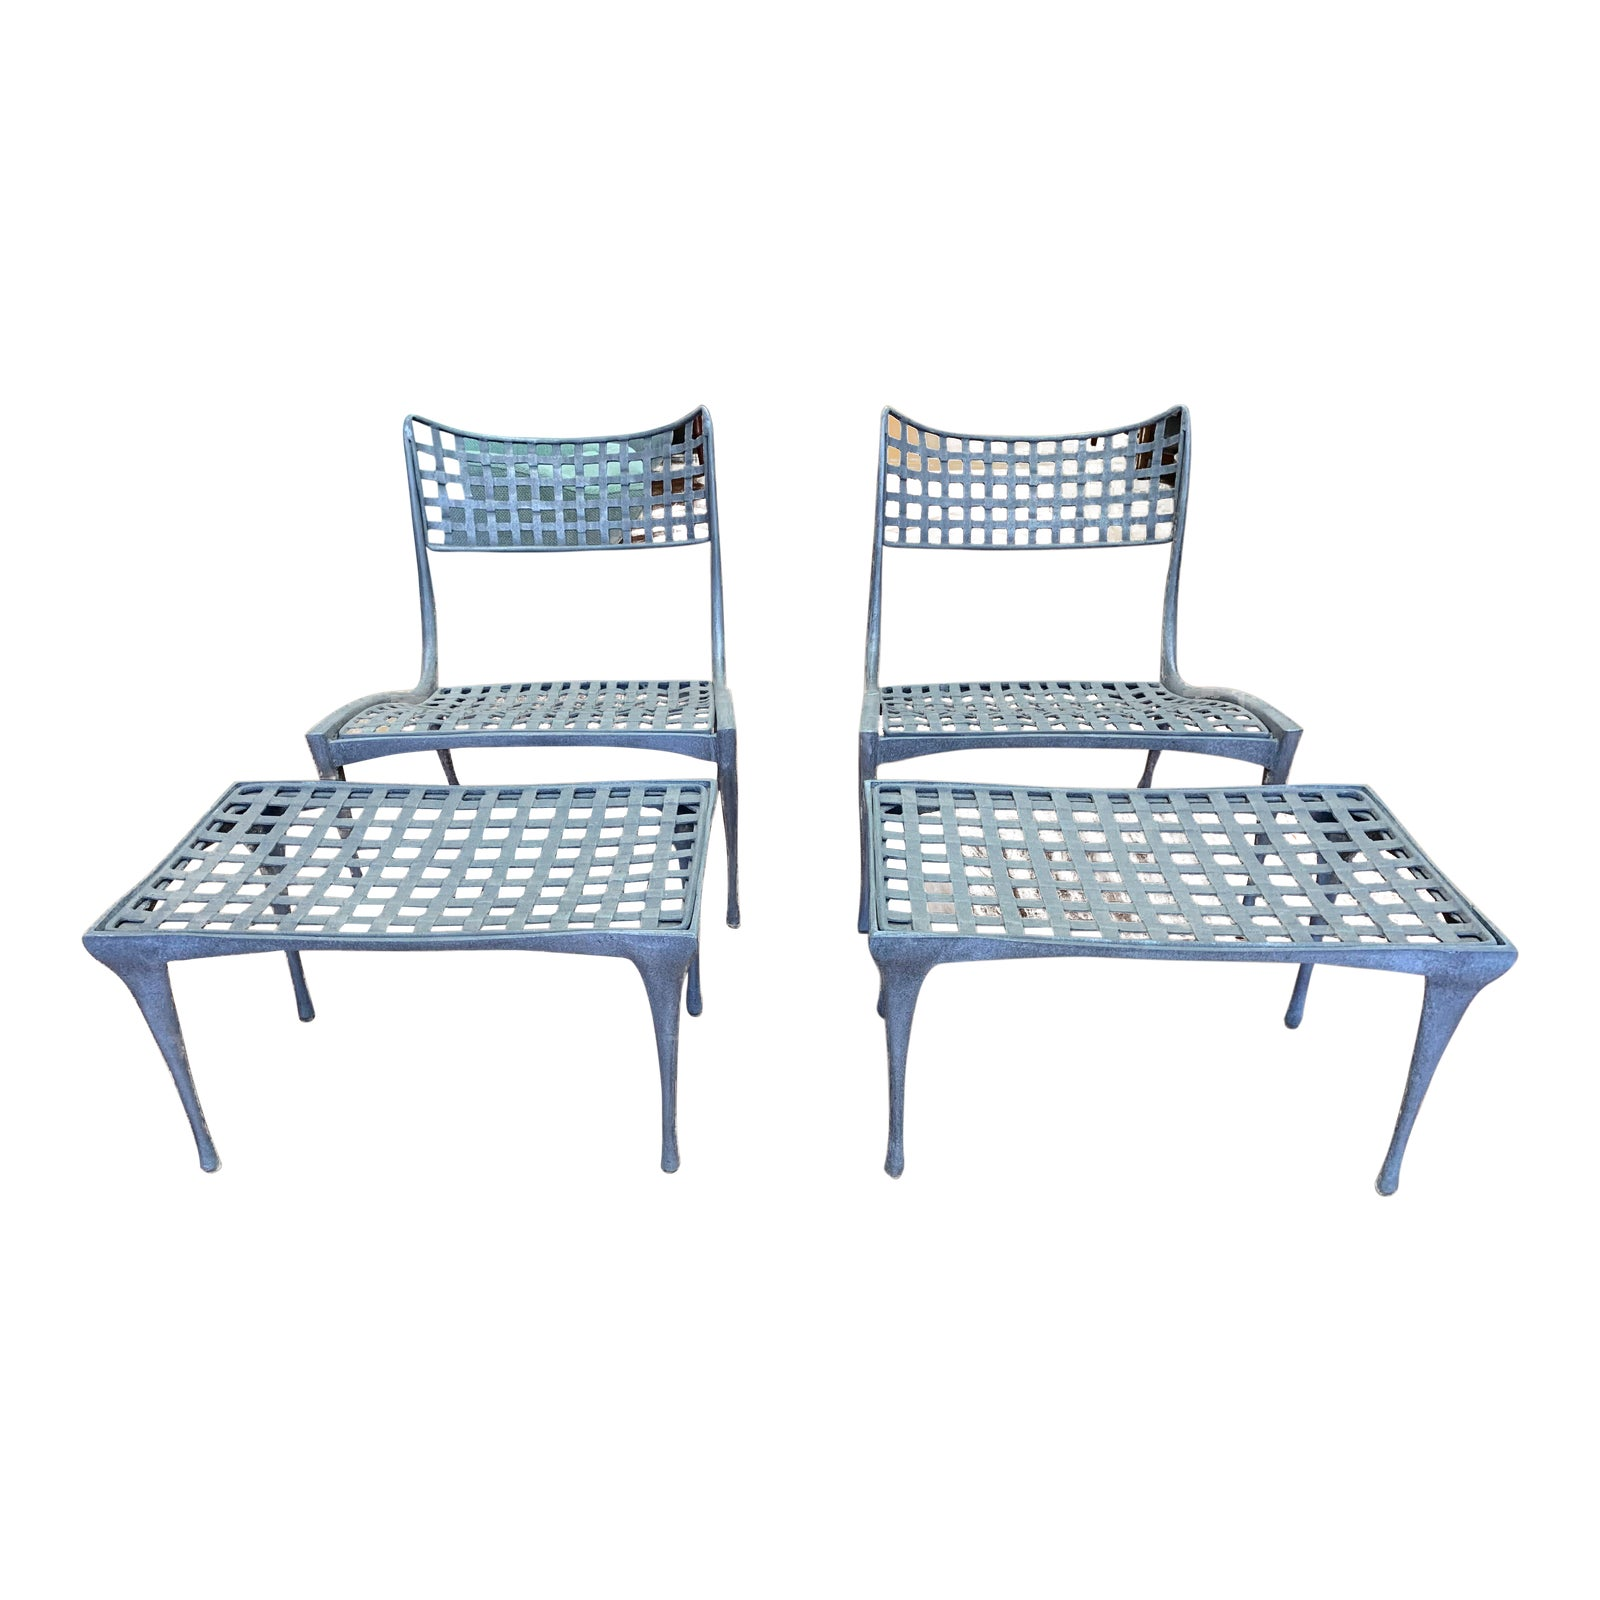 Super Sol Y Luna Aluminum Outdoor Lounge Chairs Ottomans By Evergreenethics Interior Chair Design Evergreenethicsorg